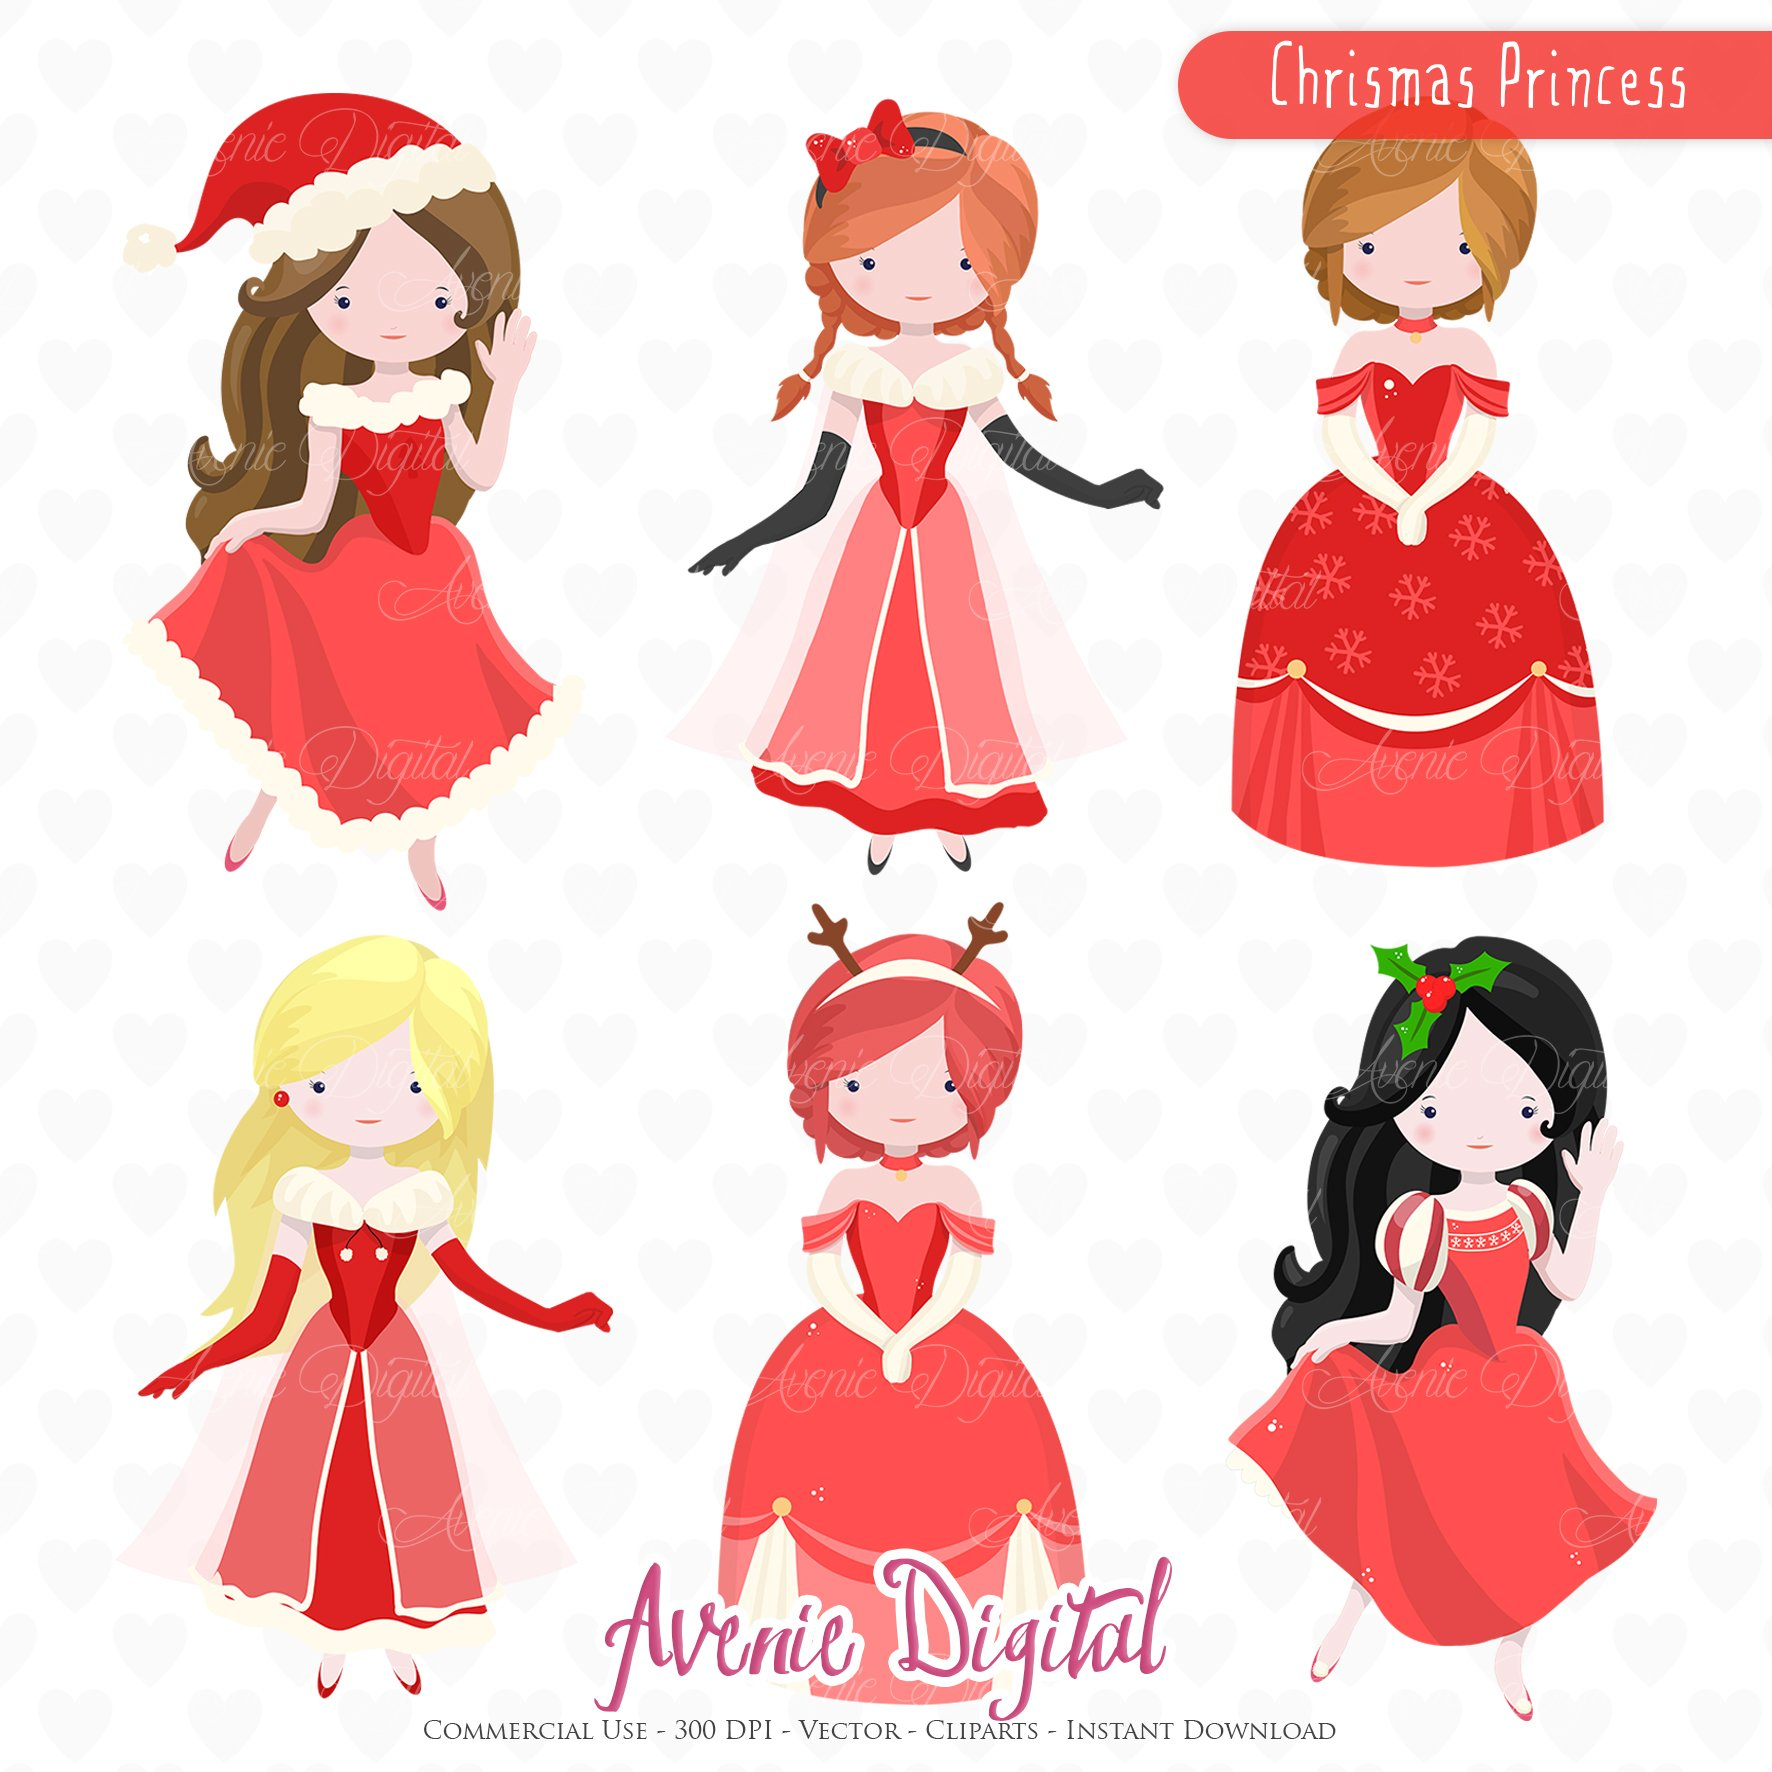 Christmas Princess Clipart - Vectors ~ Illustrations on Creative ...